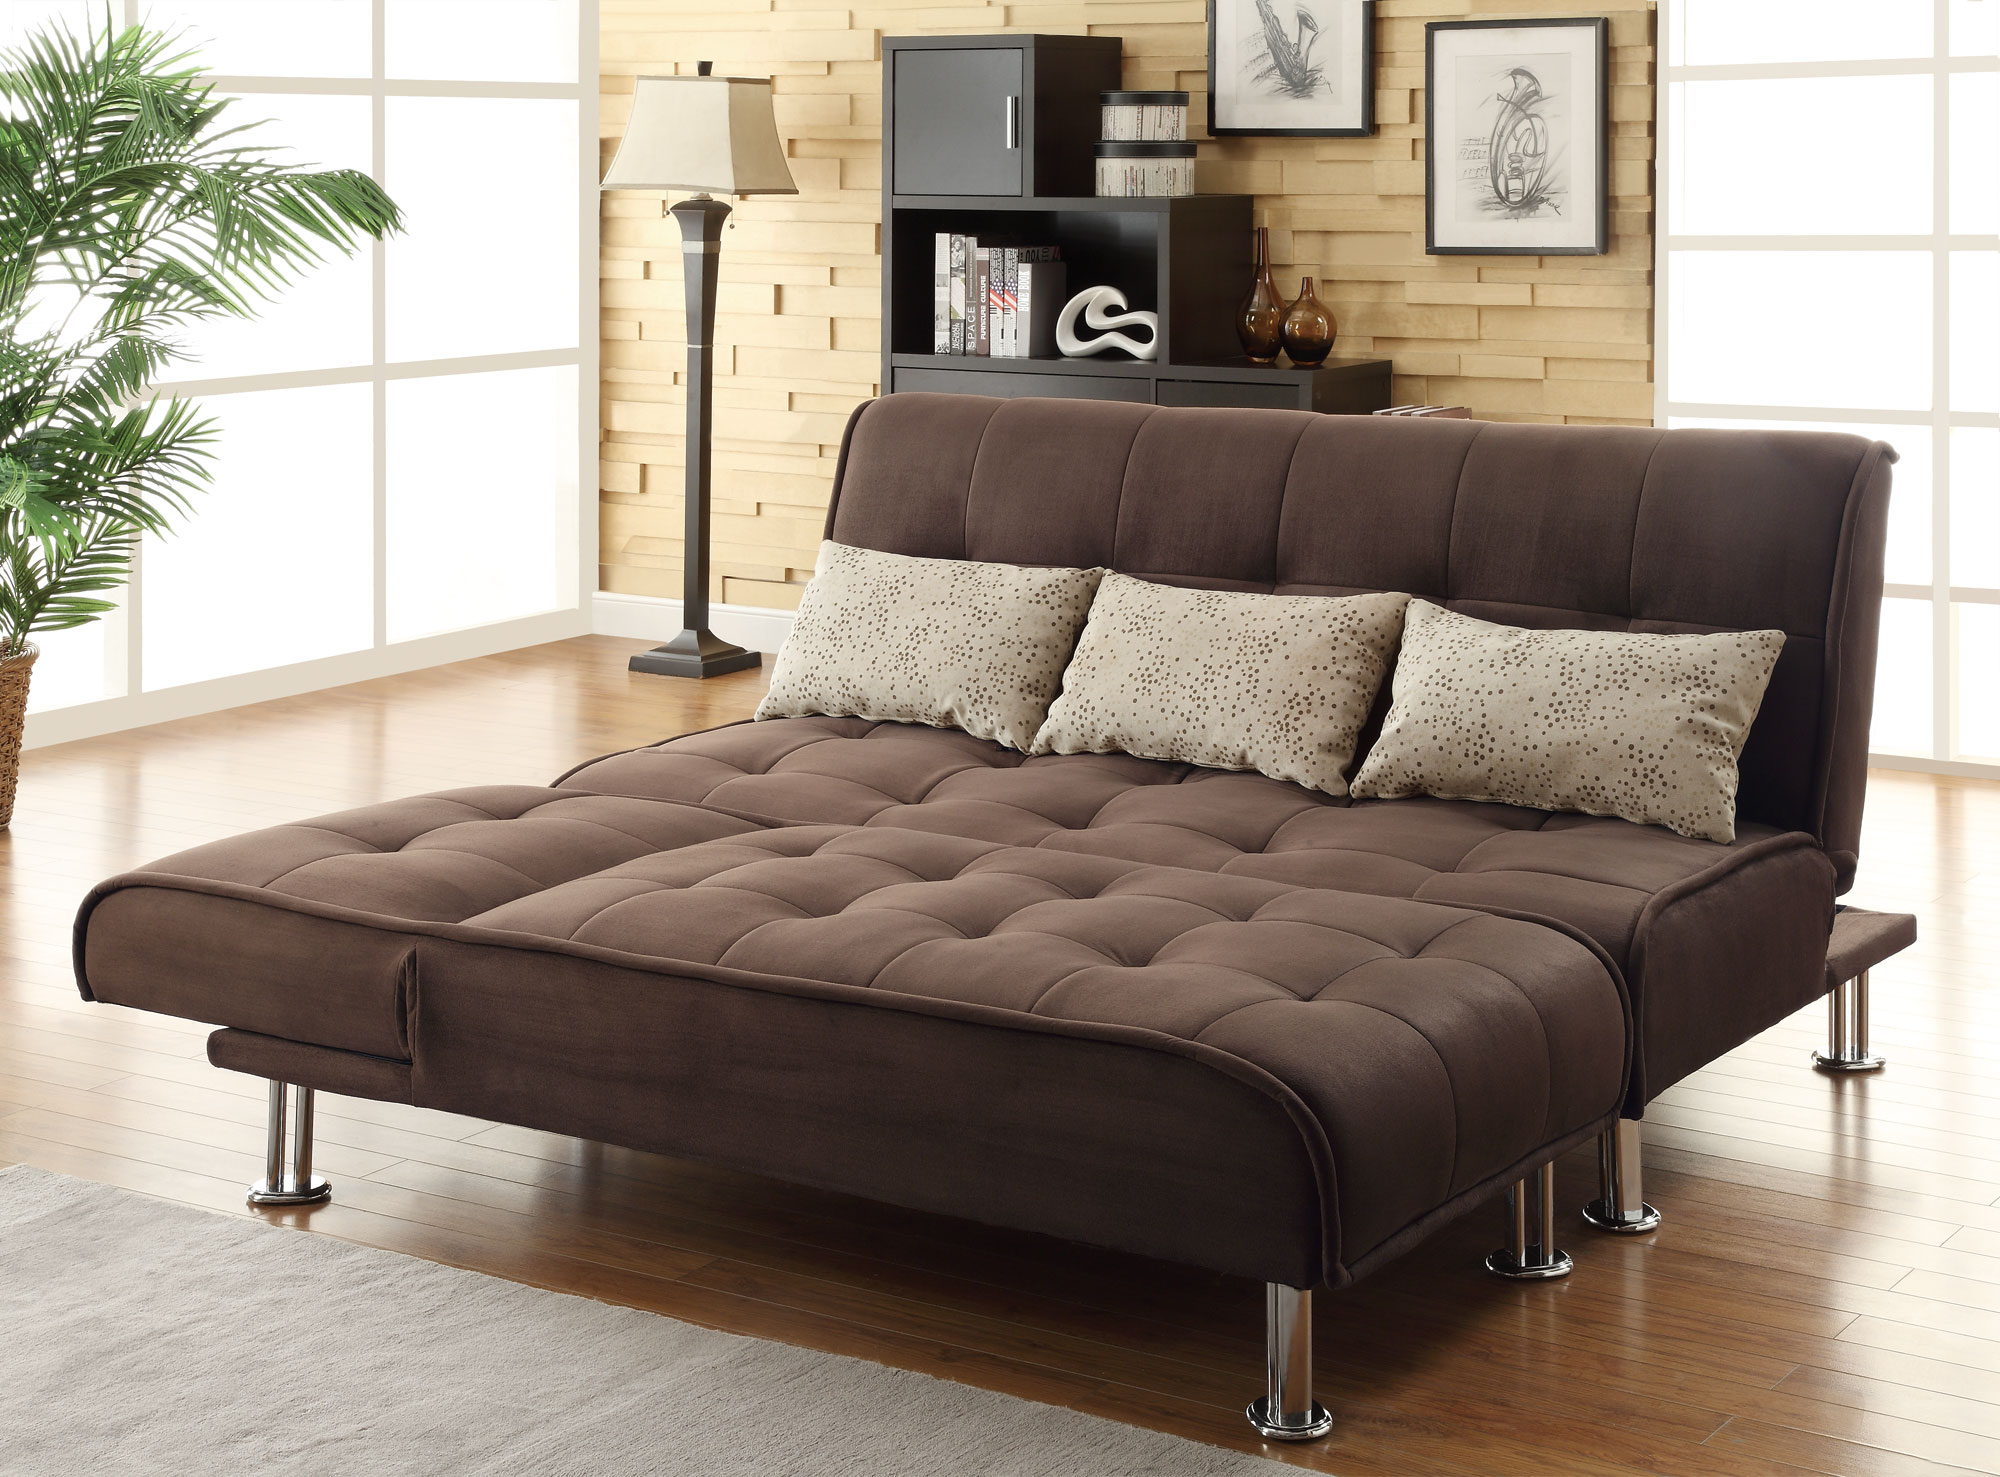 adorable furniture in the living room cheap futons for sale furniture  nice furniture with  fy feel cheap futons for sale      rh   agisee org